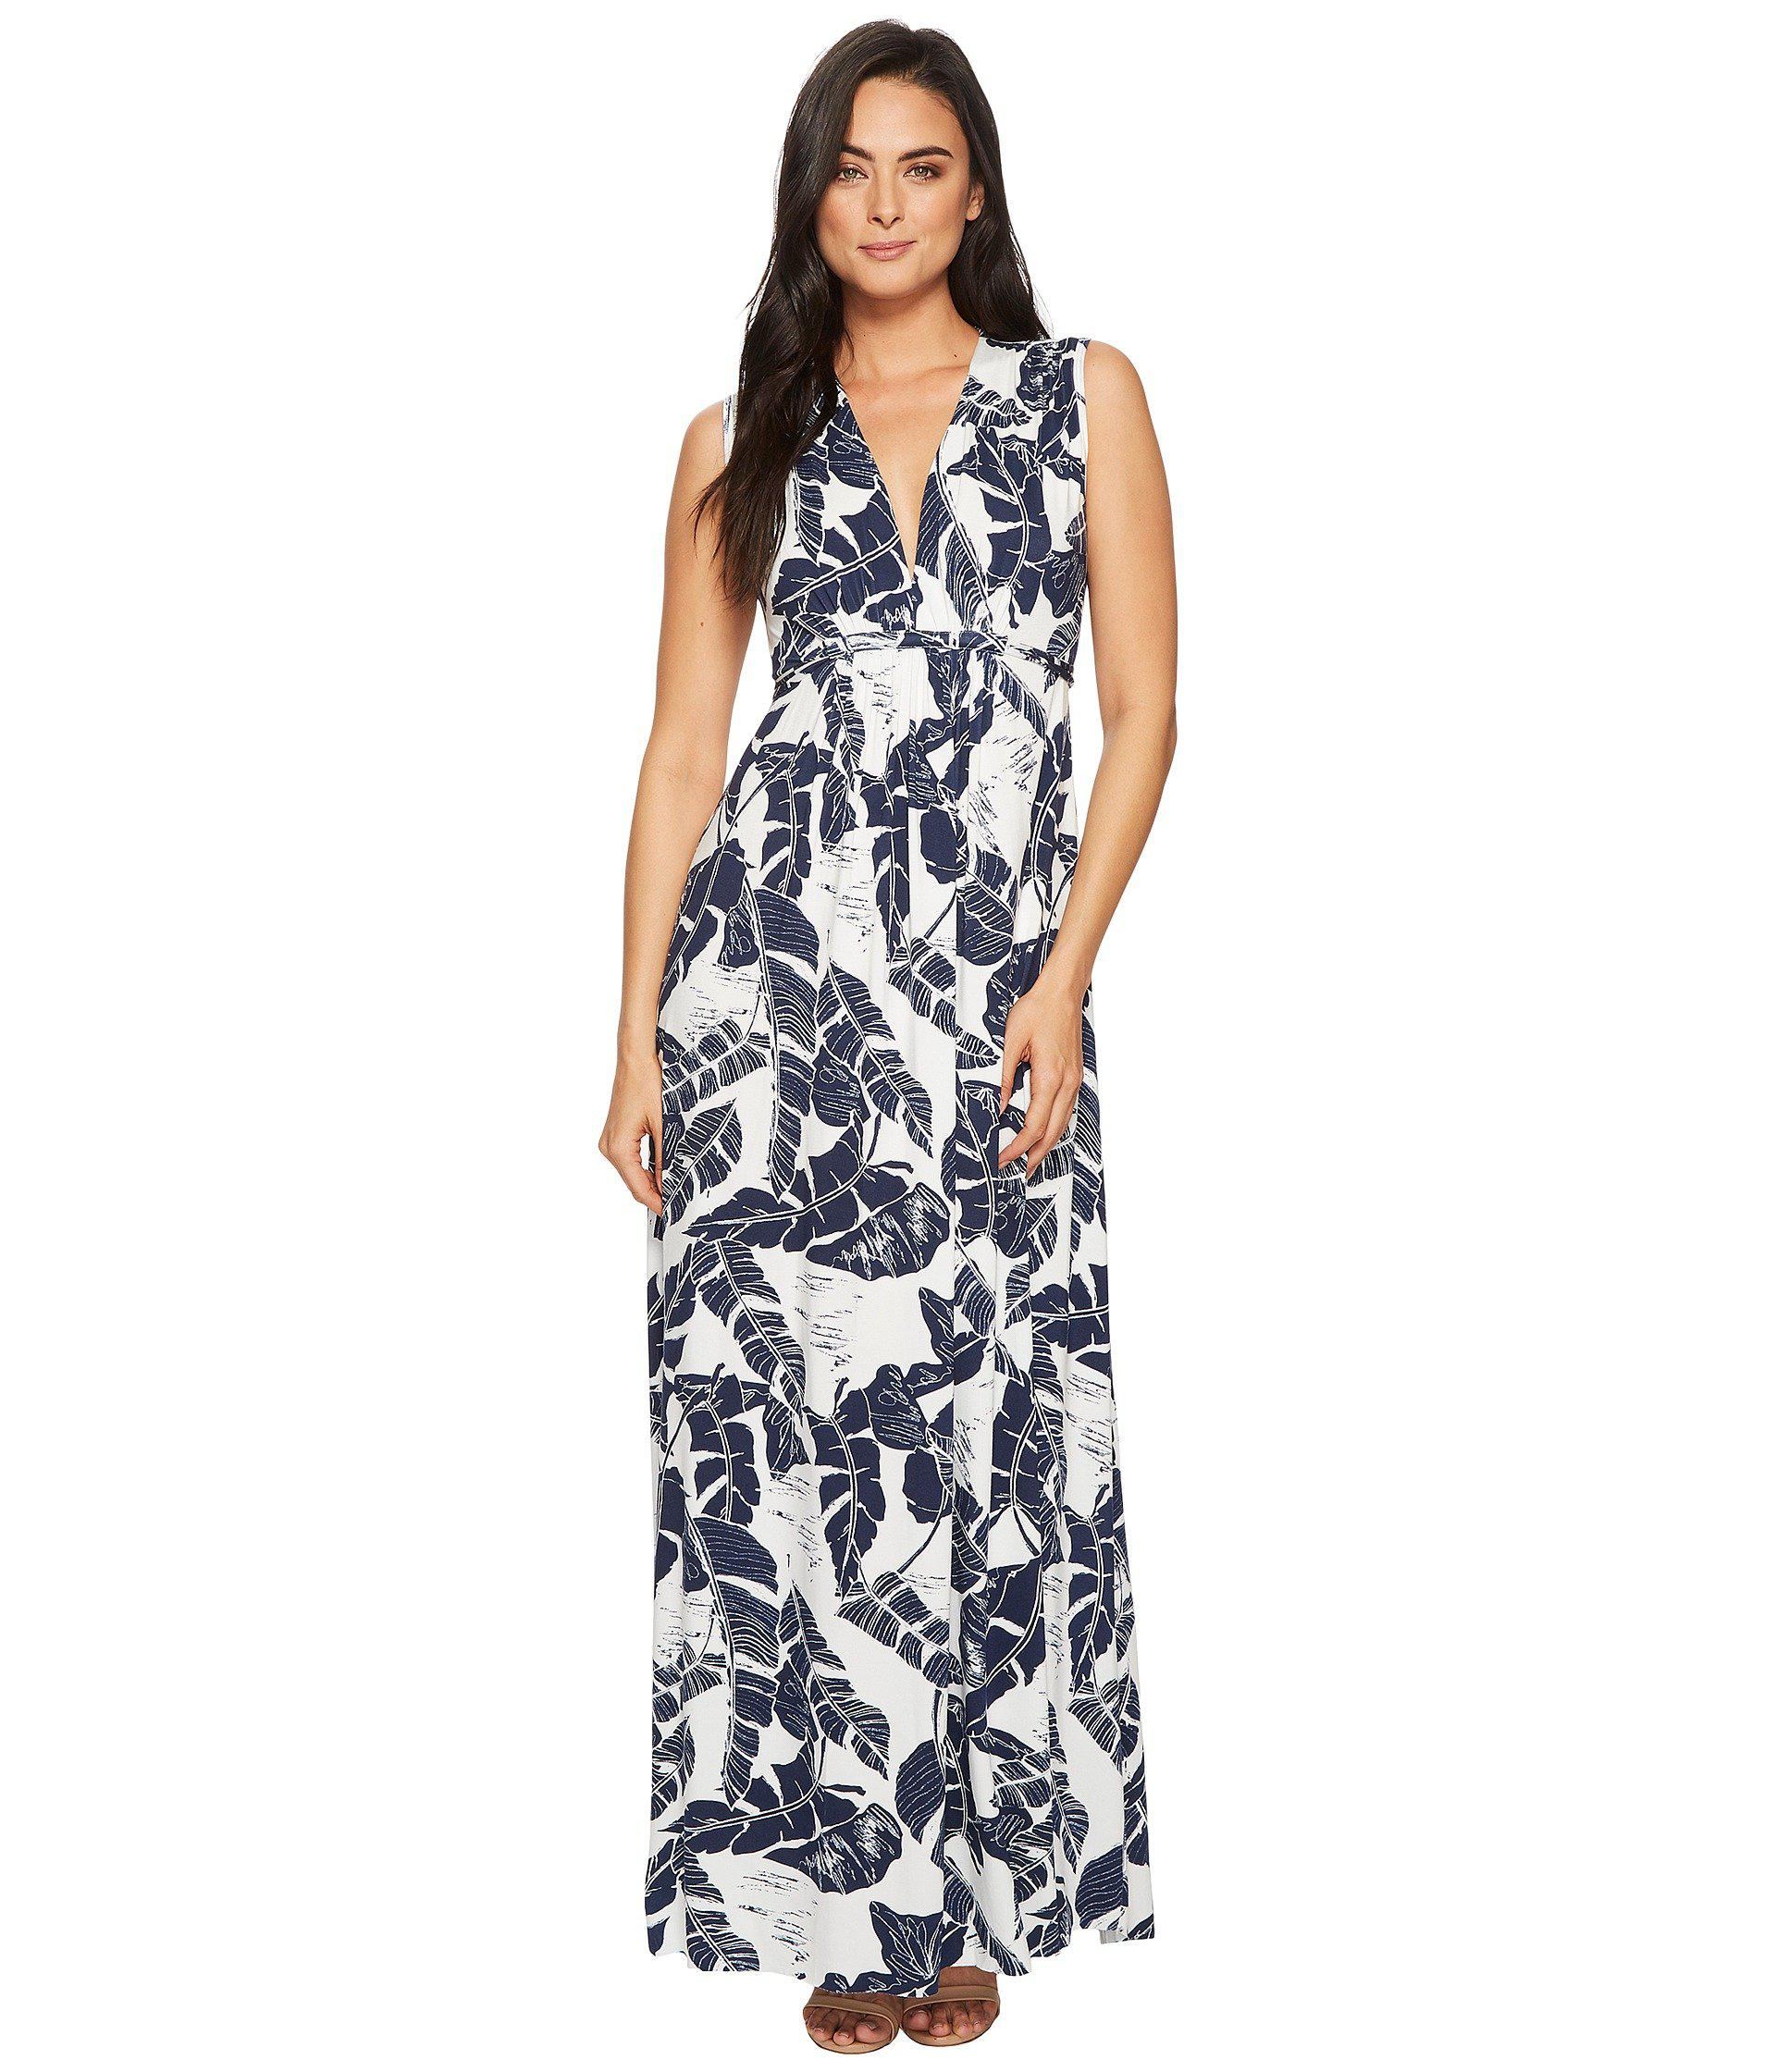 ce9a3b088d5 Lyst - Rachel Pally Plus Size Morning Dress White Label in Blue